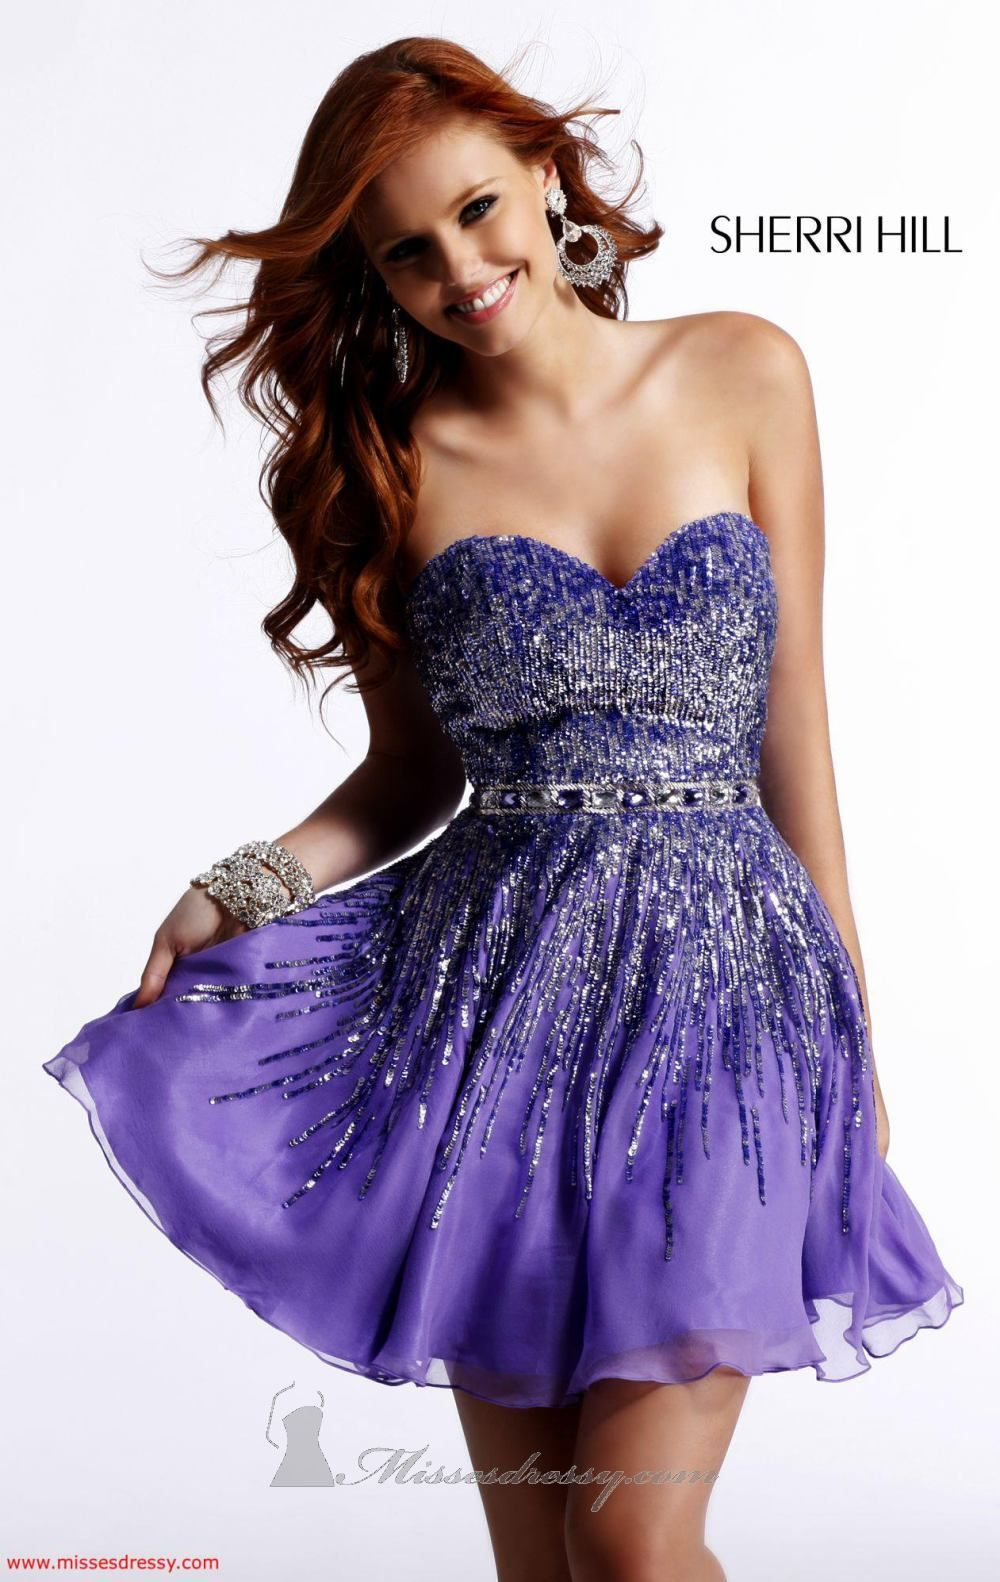 Pleated cocktail dress by sherri hill for sale at amazing